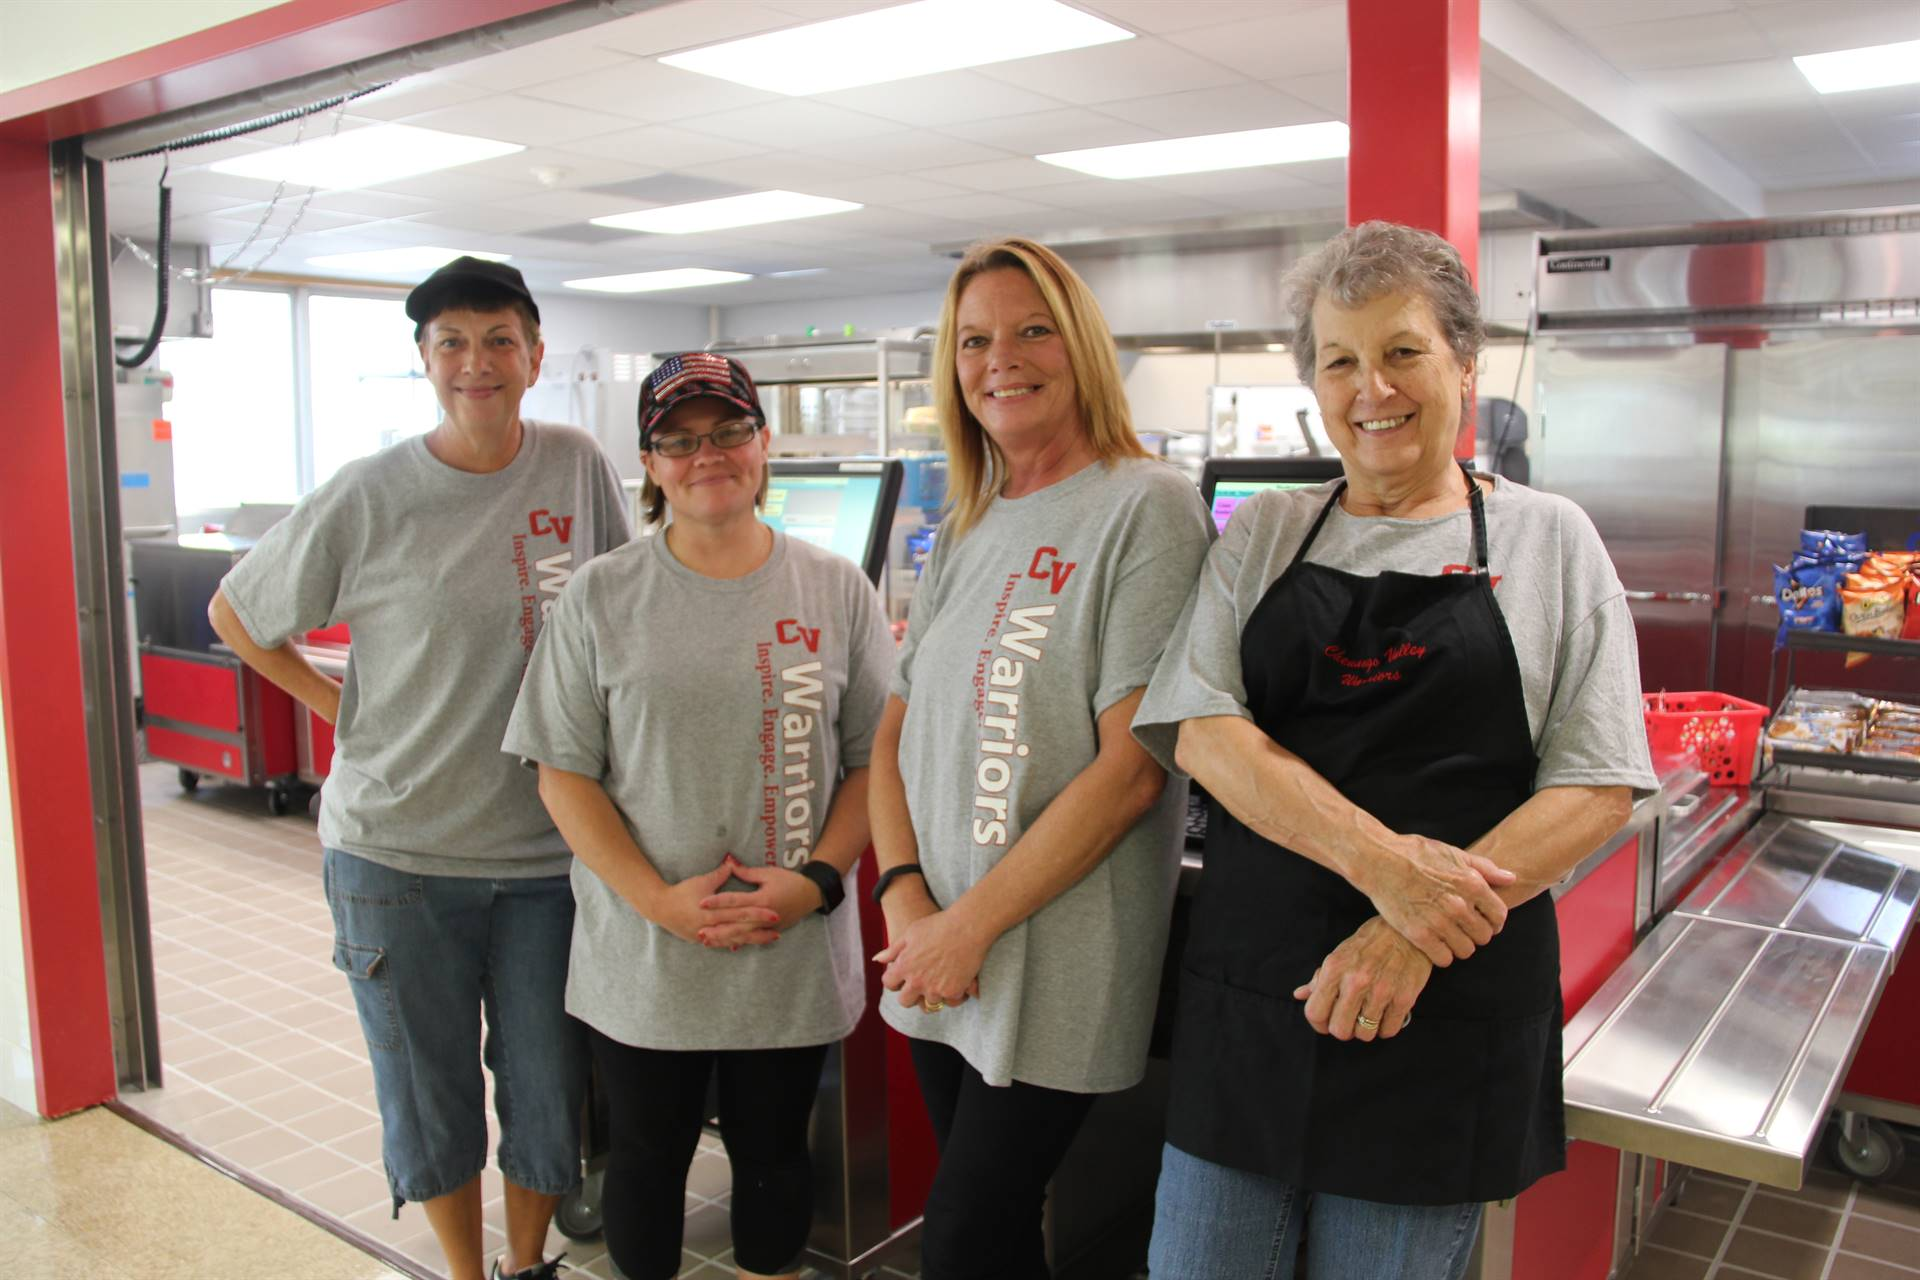 chenango bridge food services staff smiles in front of renovated cafeteria kitchen